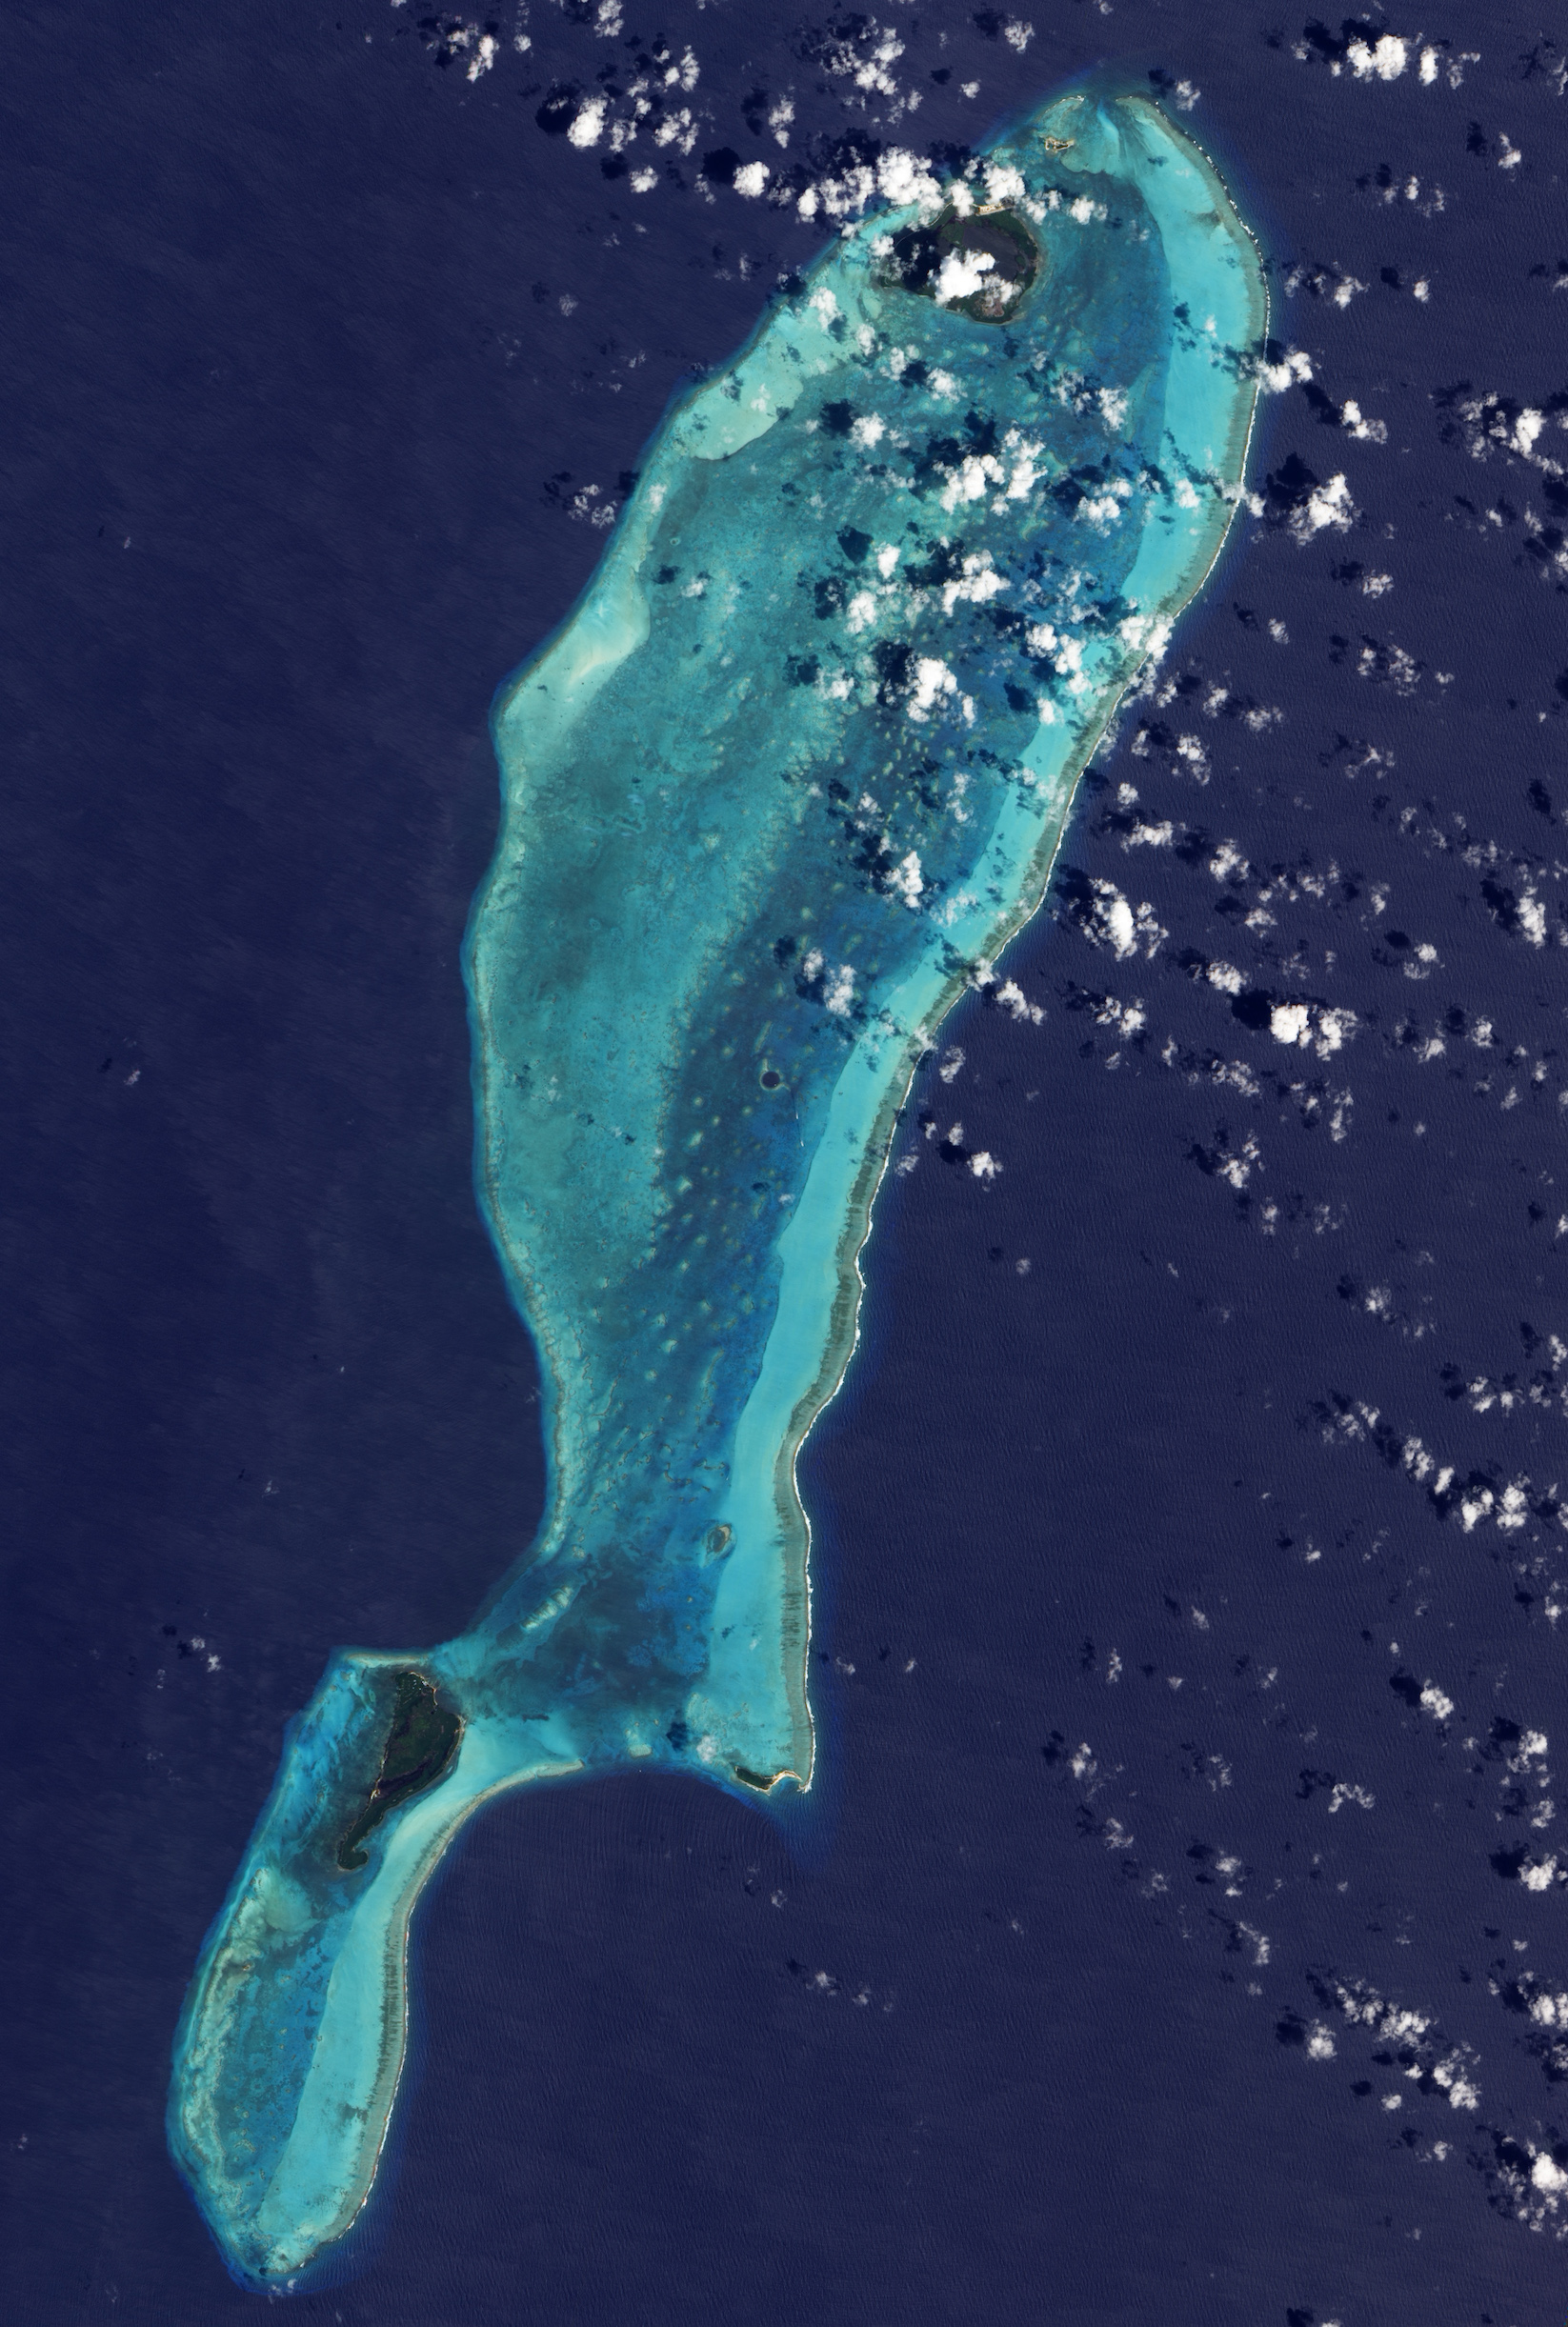 Today's Image of the Day comes from the NASA Earth Observatory and features a look at Belize's beautiful Lighthouse Reef atoll.